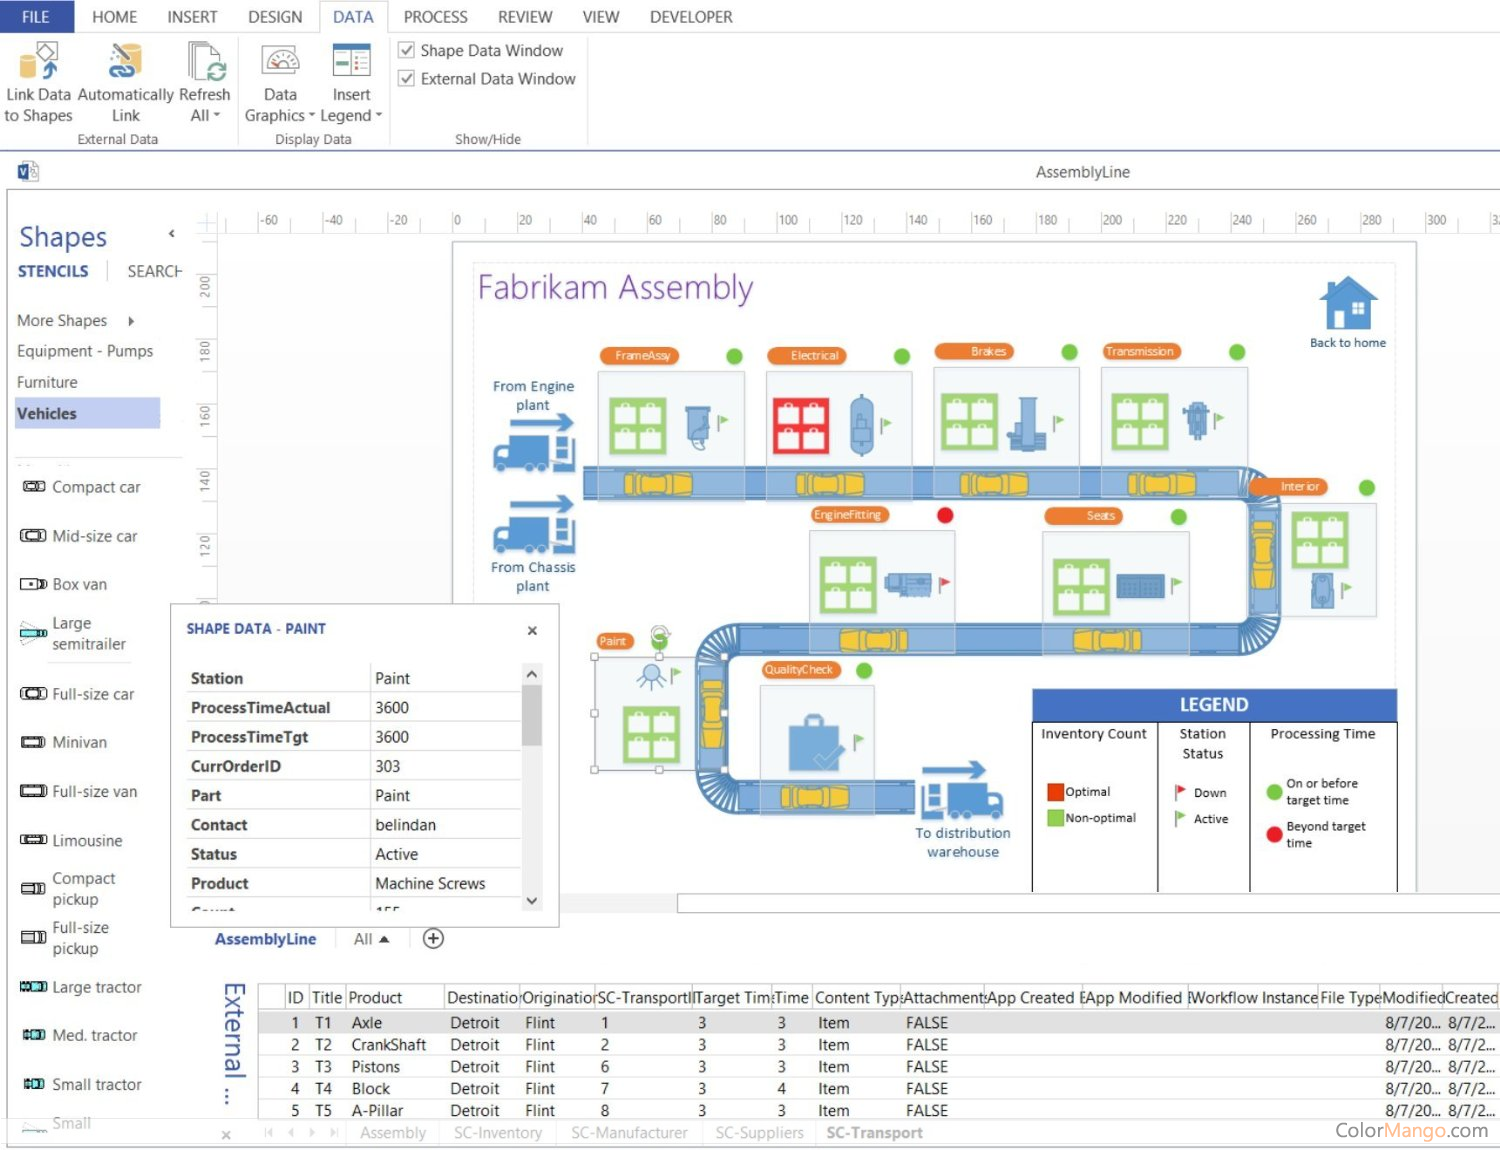 micosoft vision Microsoft Visio Online Shopping, Price, Free Trial, Rating